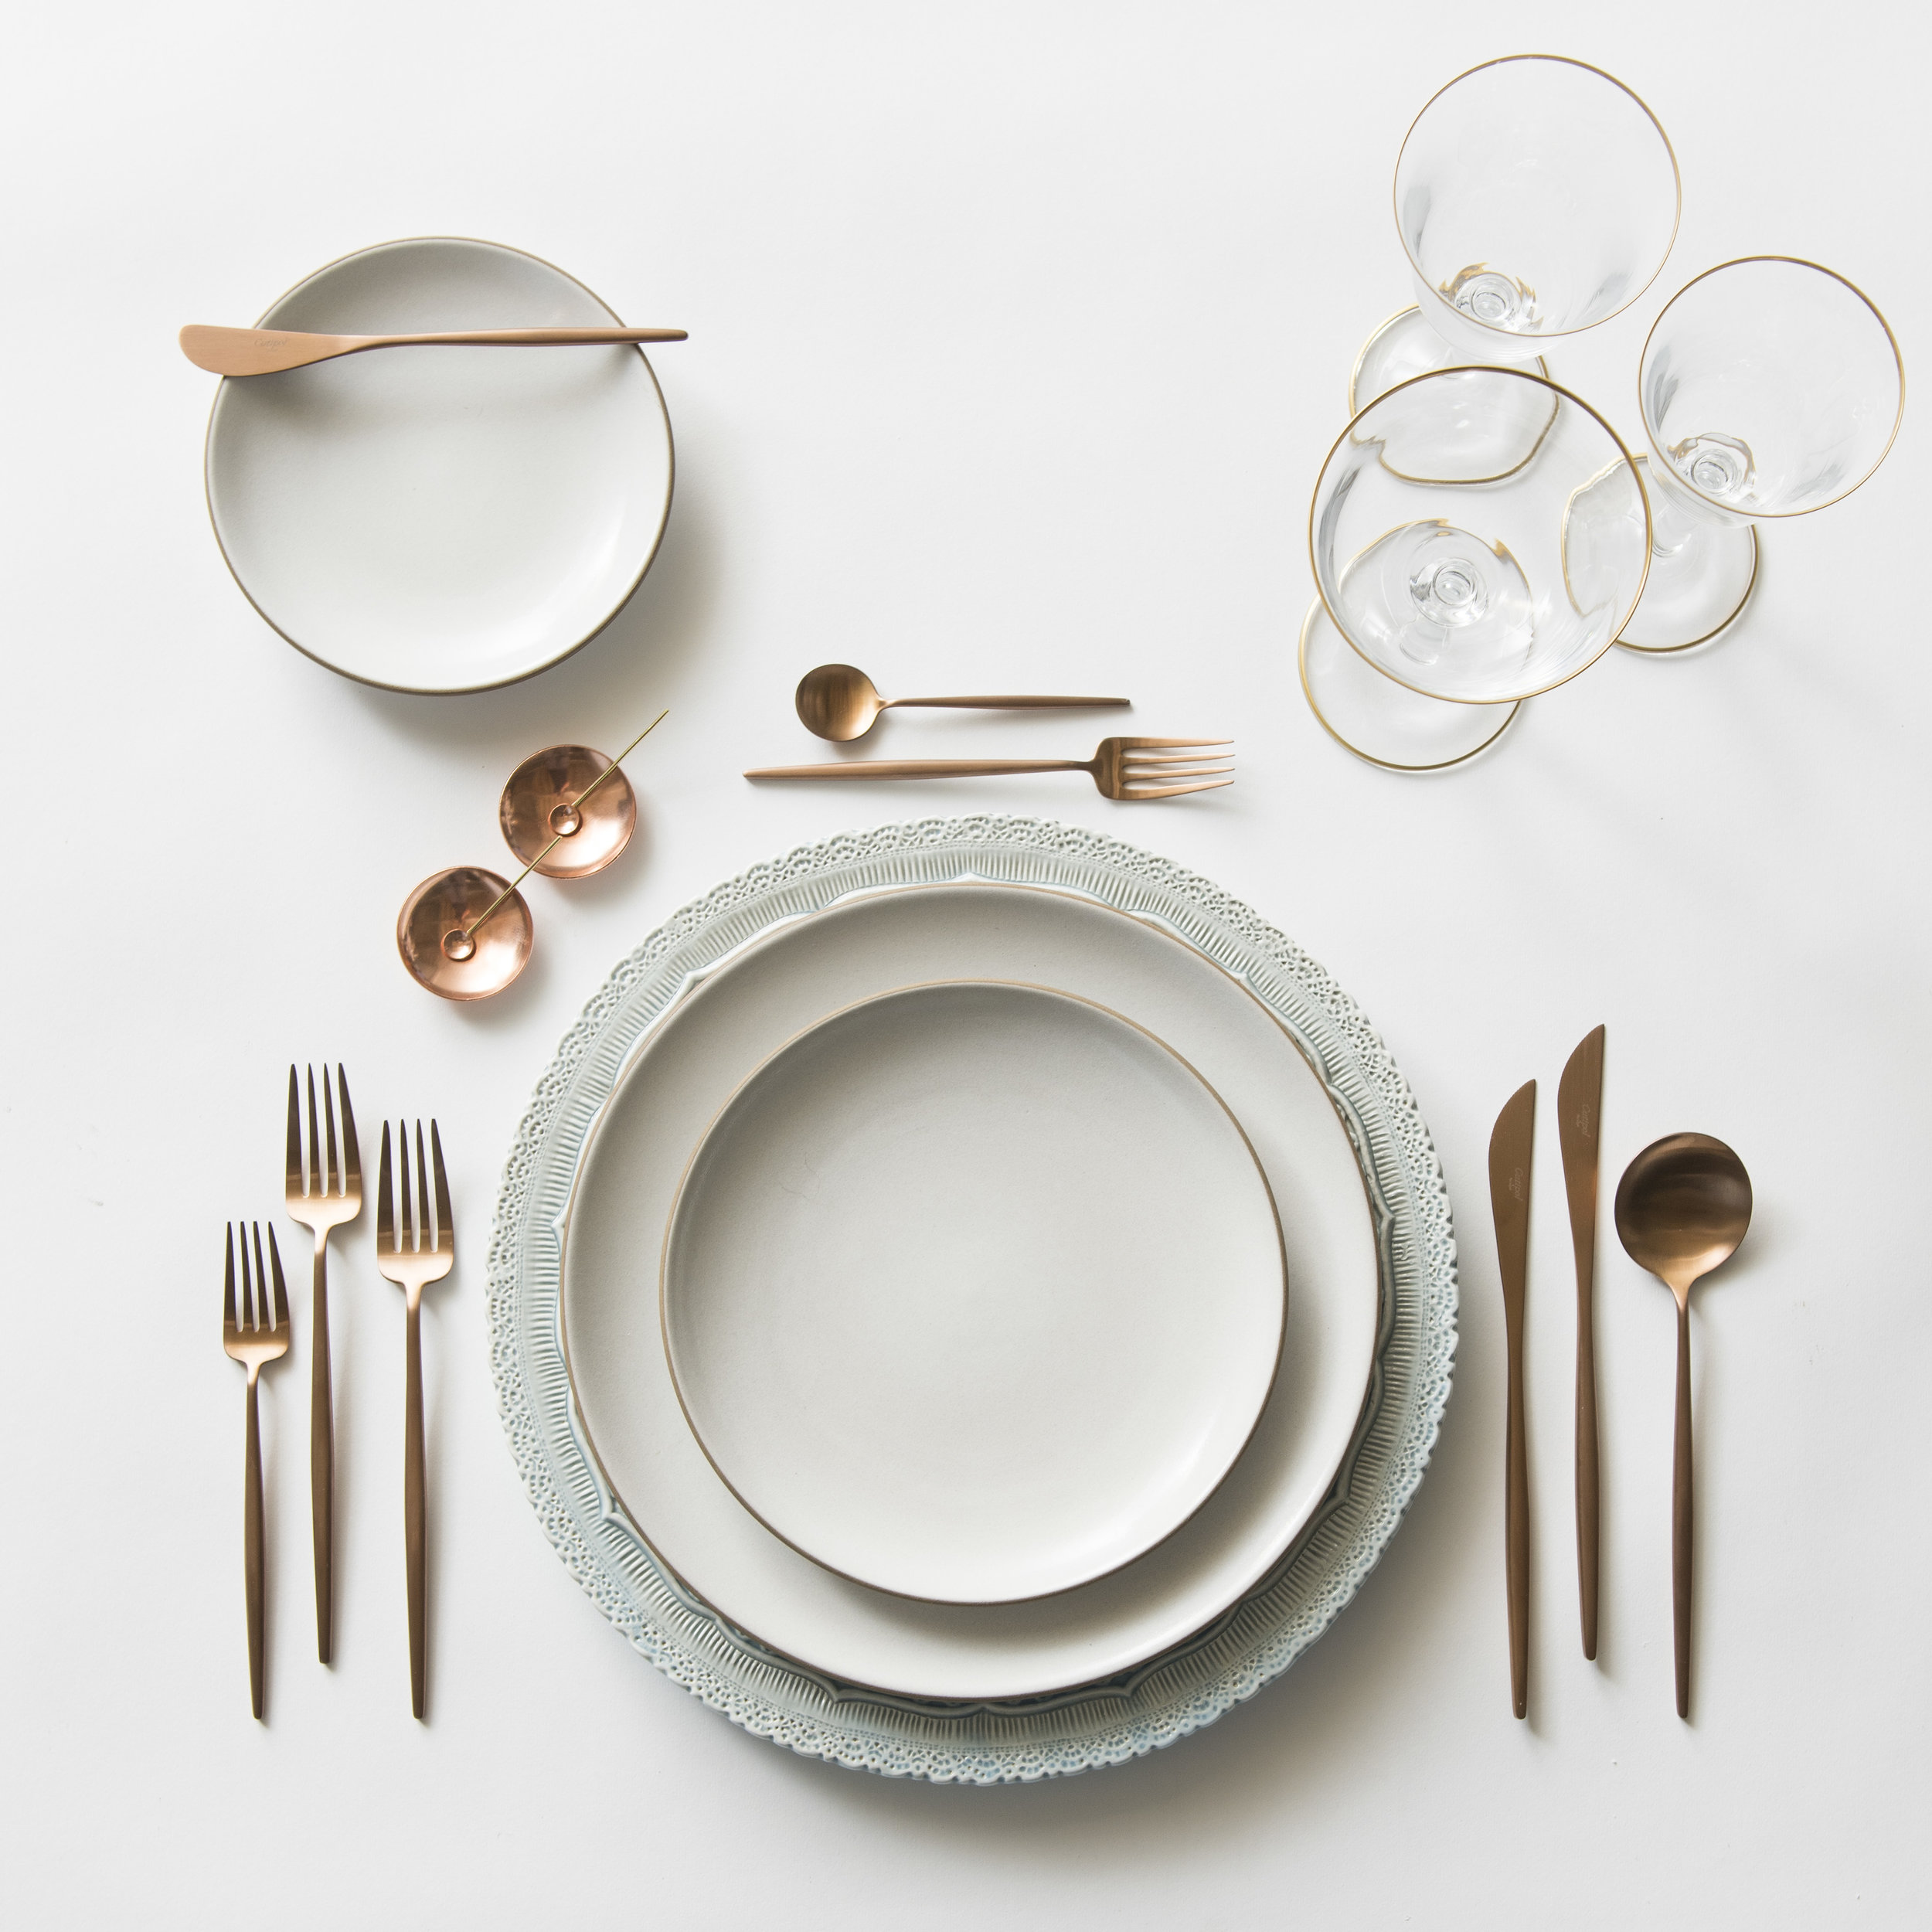 RENT: Lace Chargers in Dusty Blue + Heath Ceramics in Opaque White + Moon Flatware in Brushed Rose Gold + Chloe 24k Gold Rimmed Stemware + Copper Salt Cellars + Tiny Gold/Copper Spoons  SHOP:Moon Flatware in Brushed Rose Gold + Chloe 24k Gold Rimmed Stemware + Copper Salt Cellars